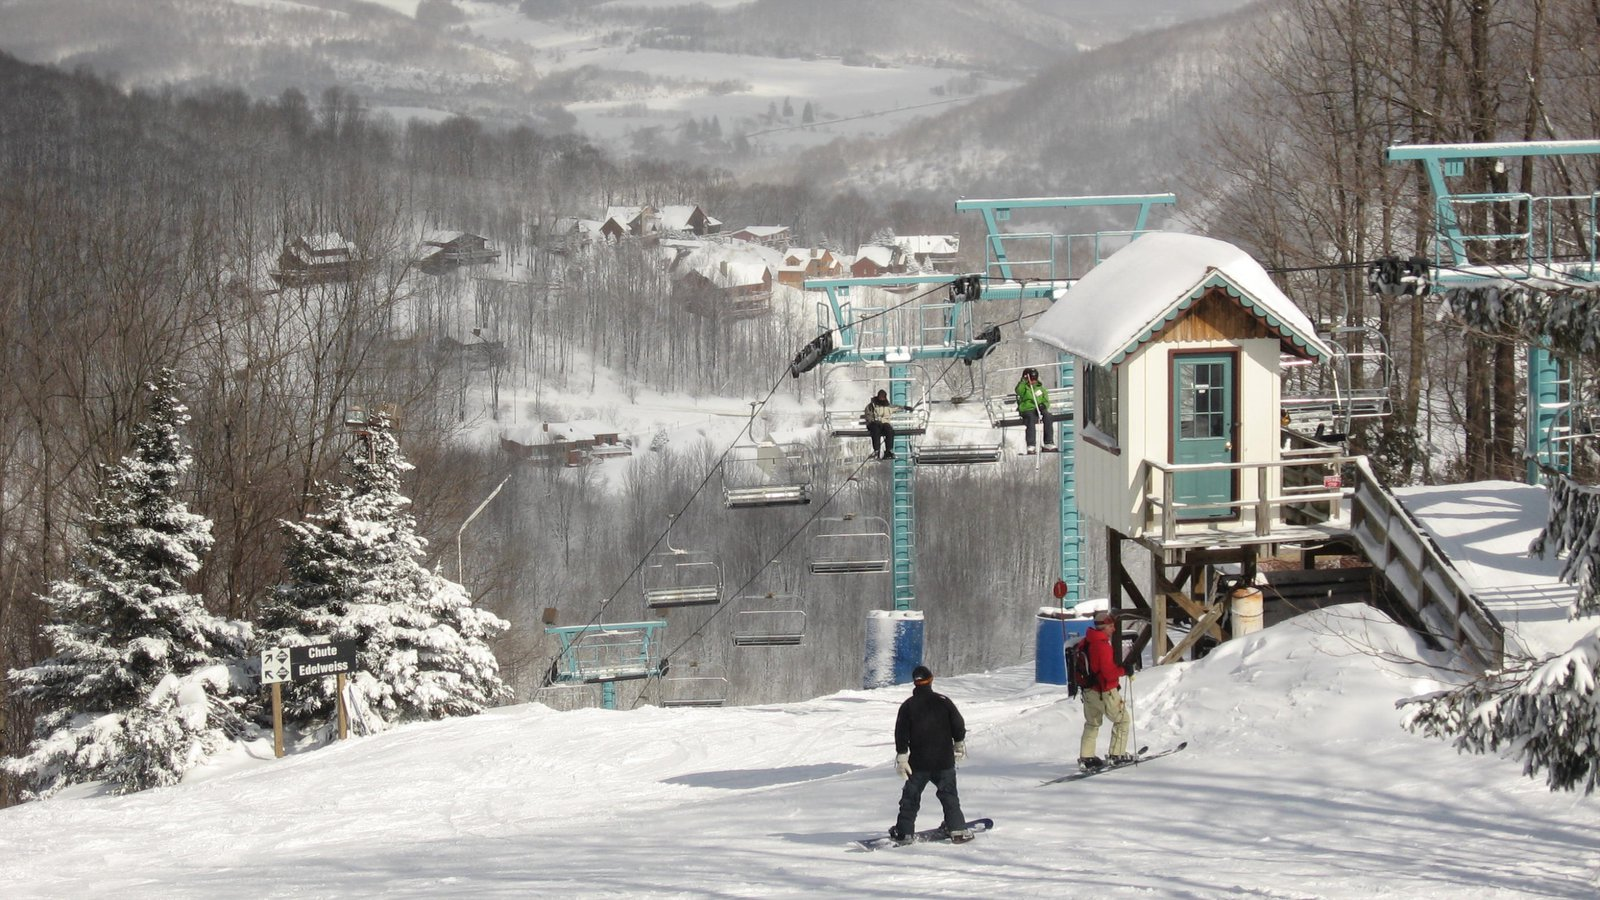 holiday valley resort pictures: view photos & images of holiday